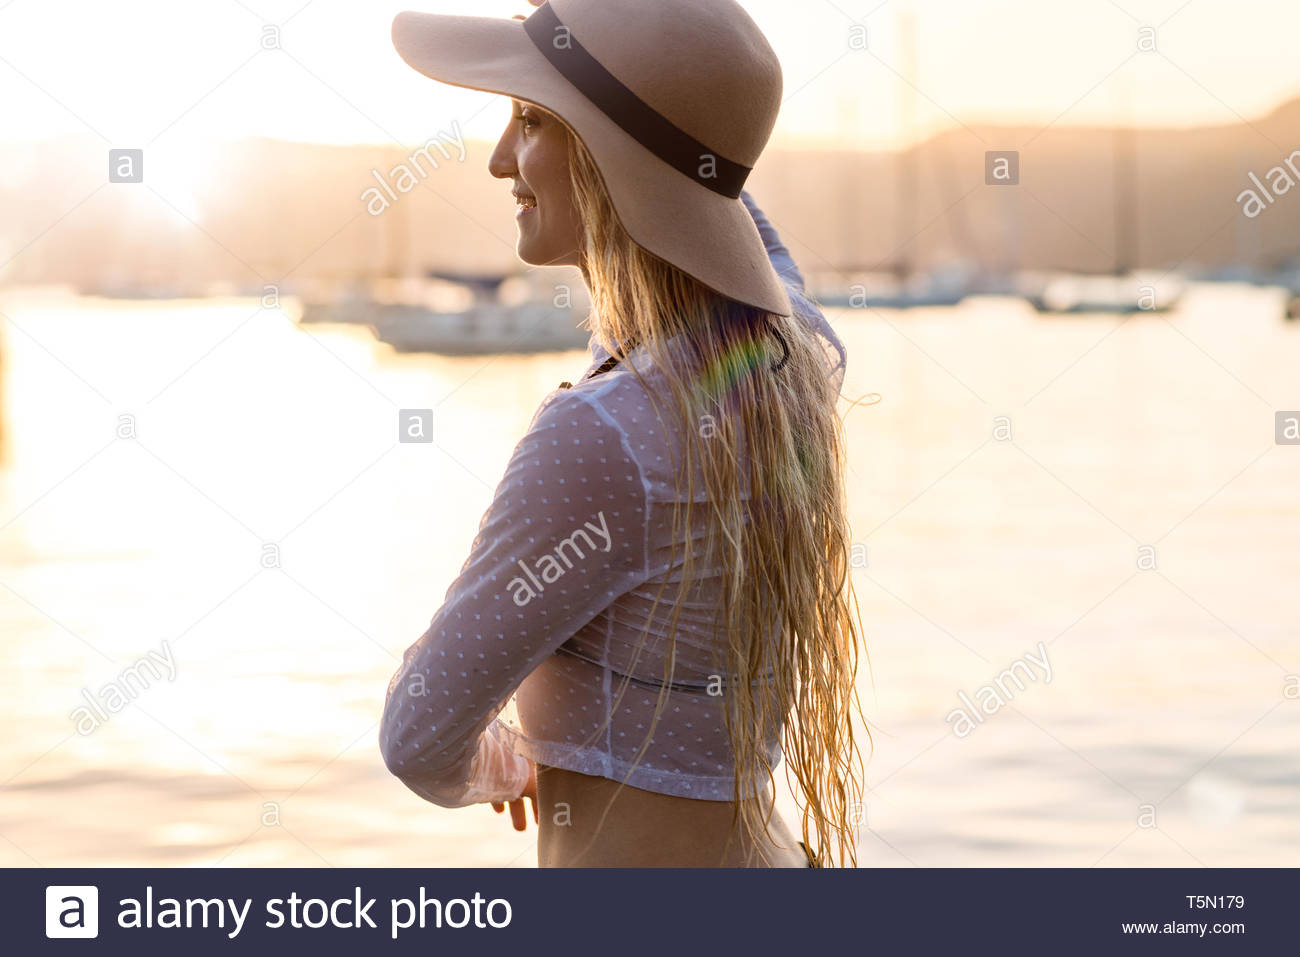 woman wearing sun hat looking at ocean in the afternoon - Stock Image